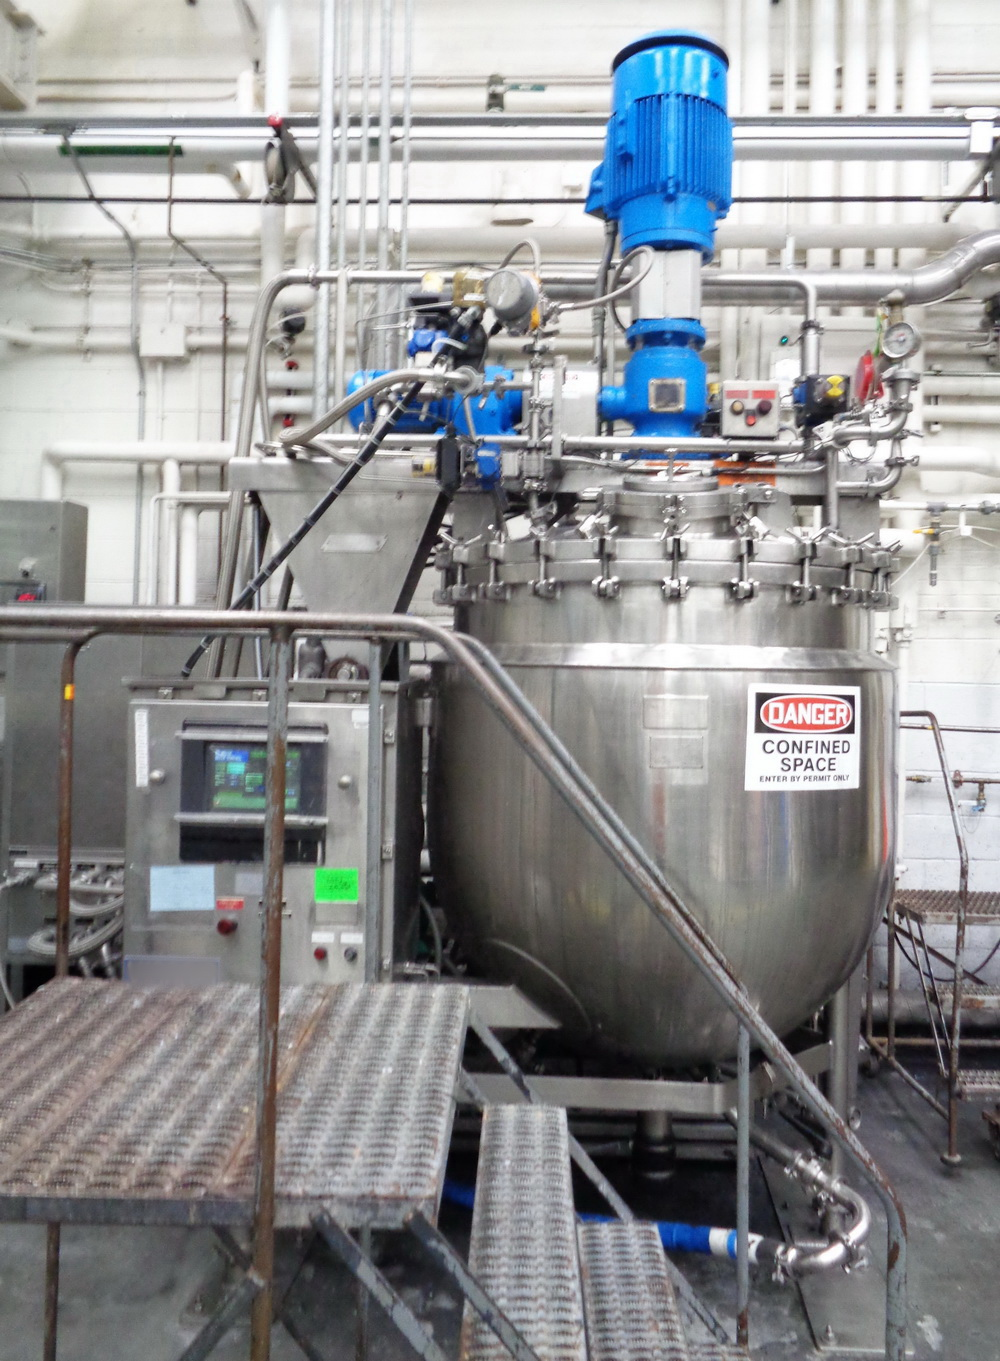 """Greerco/Gifford Wood 1,000 Liter (250 gal) 316 SS Jacketed Triple Motion """"Agi-Mix"""" Kettle/Reactor - Image 2 of 27"""